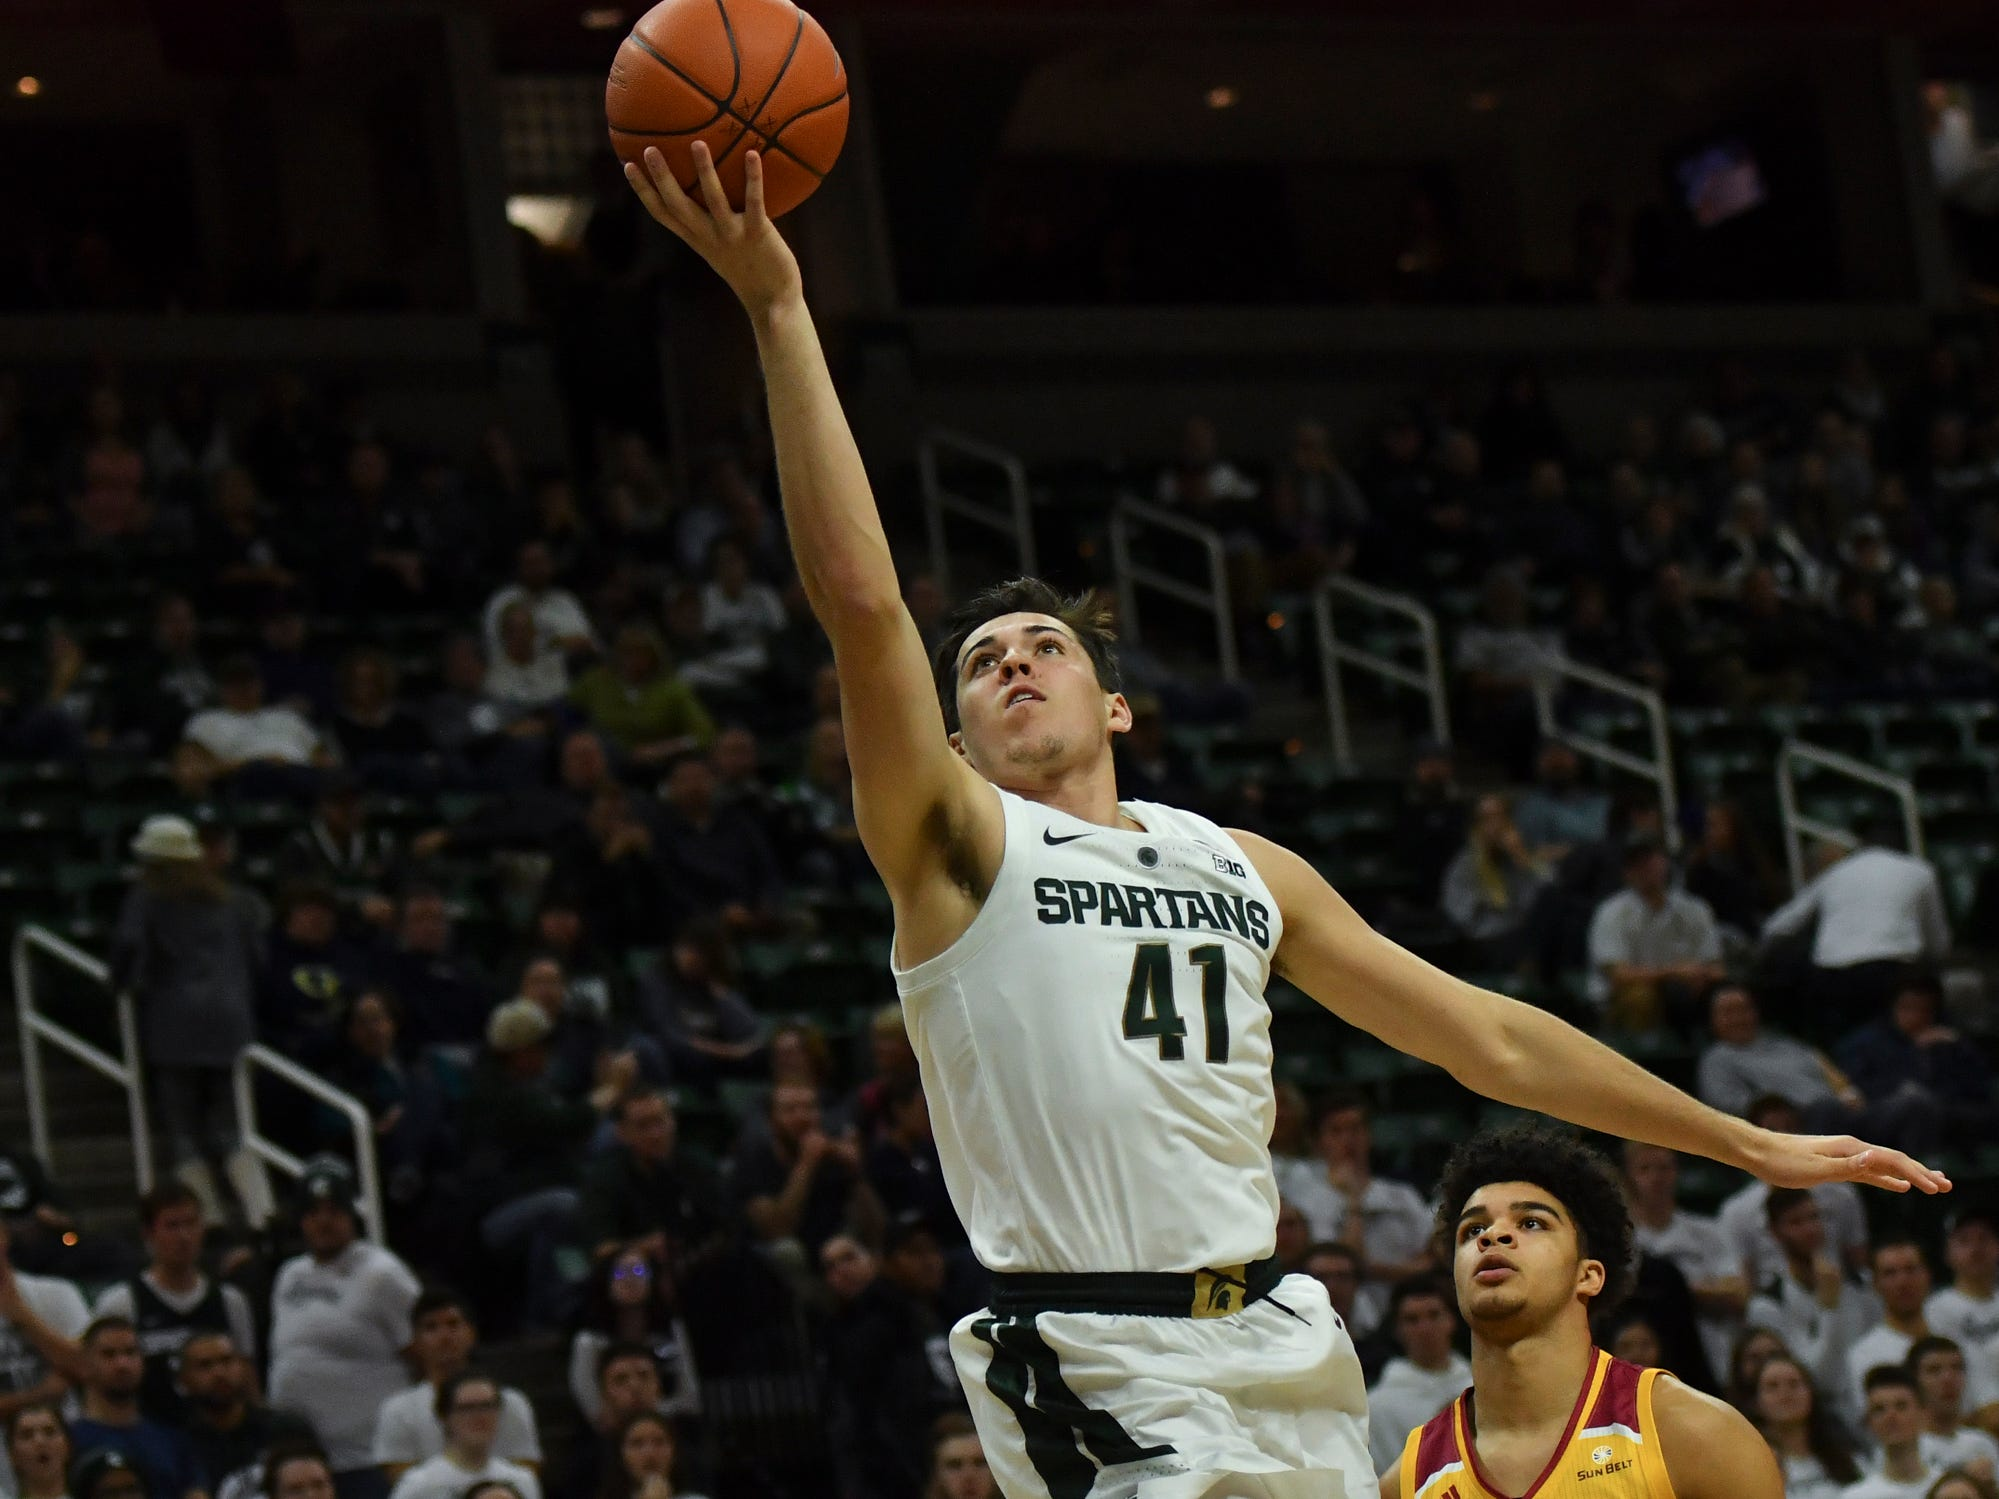 MSU's Conner George scores against Louisiana-Monroe Wednesday, Nov. 14, 2018, at the Breslin Center.  MSU won 80-59.